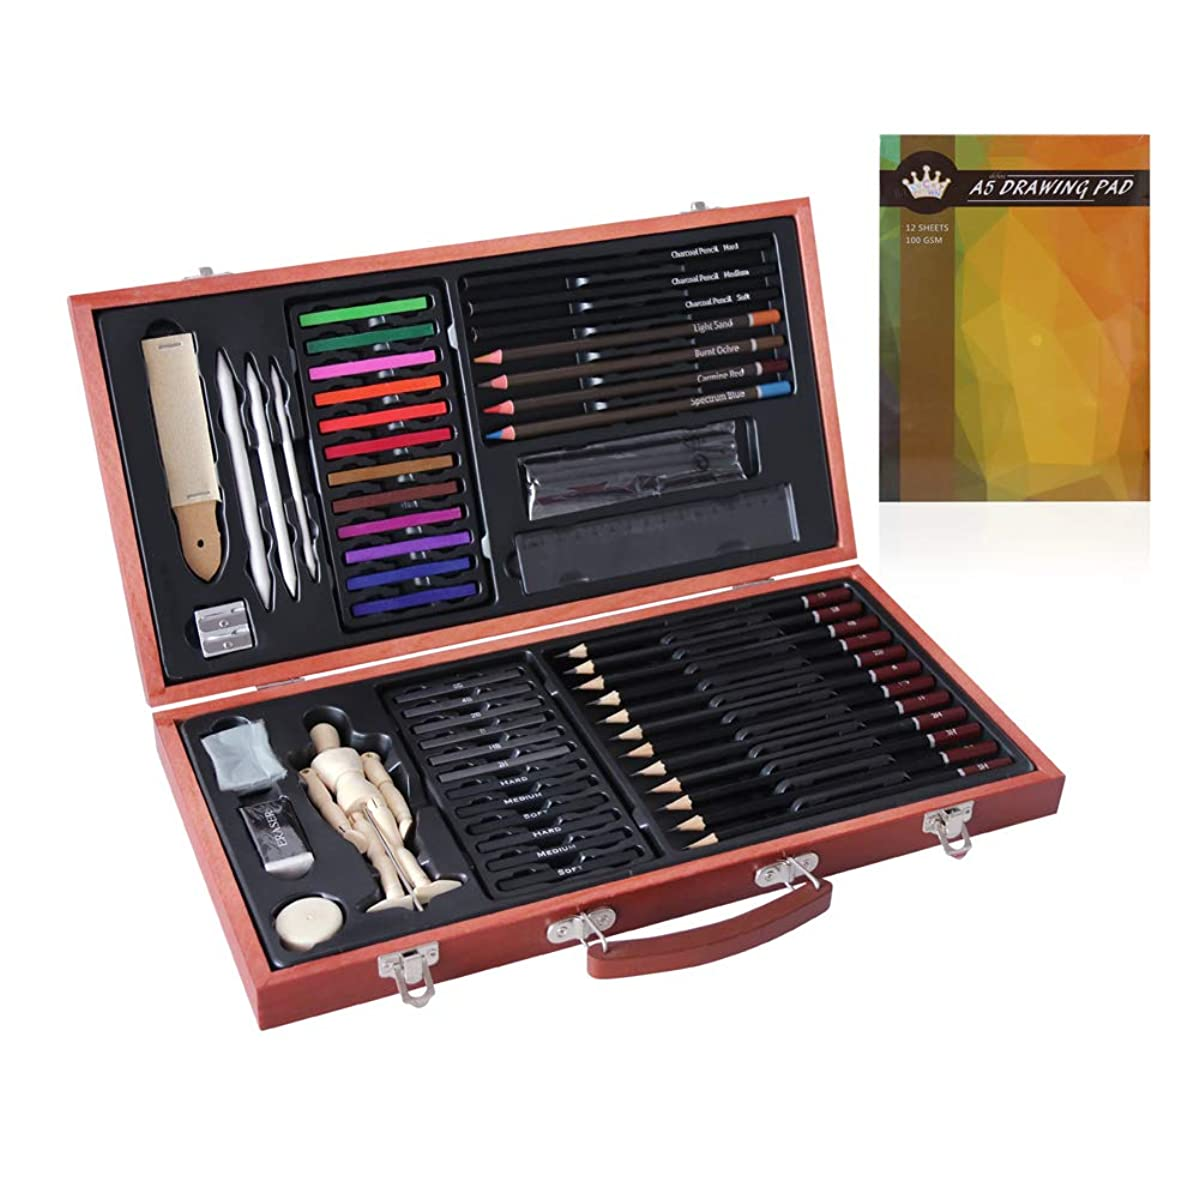 Professional Art kit,58 Piece Sketching and Drawing Art Set,Art Supplies for Drawing,Painting and Wooden Set- Art Kit for Kids,Teens and Adults